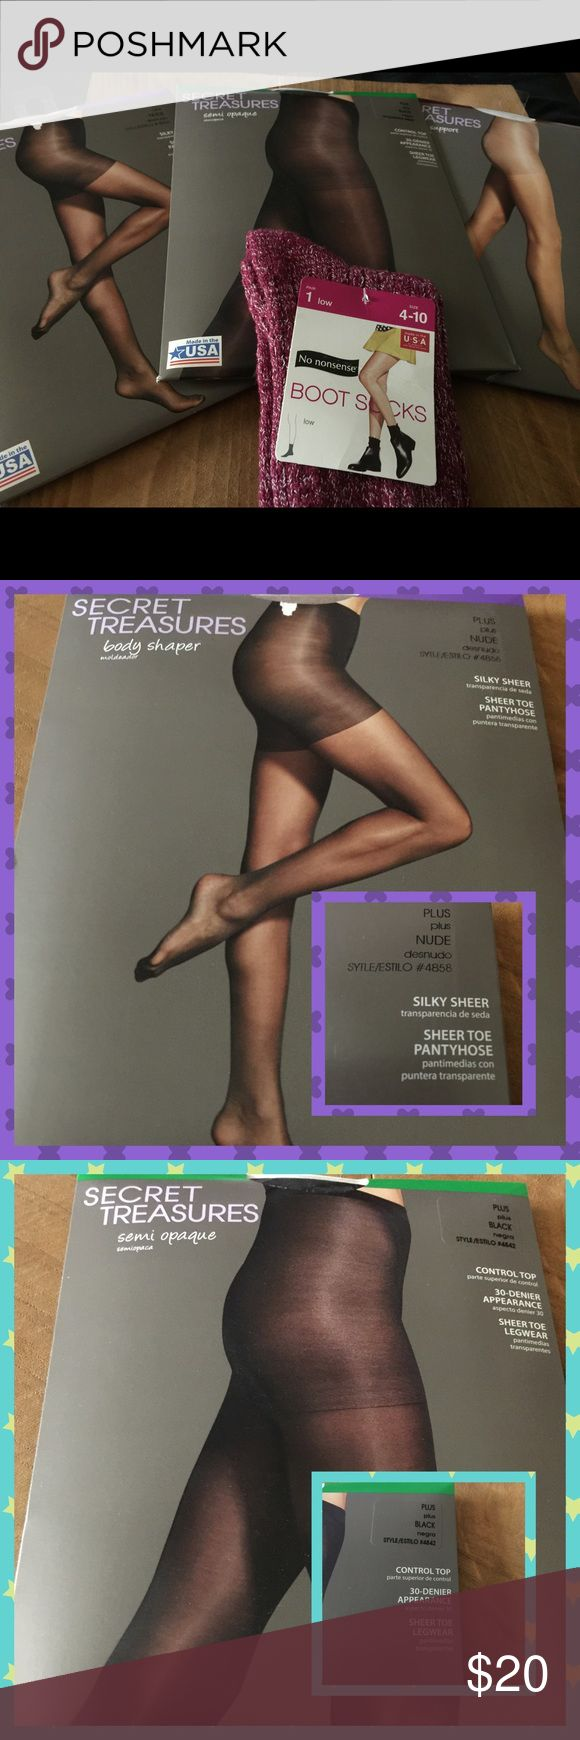 NIP SECRET TREASURES PANTYHOSE/NoNonsense Sock lot 1st pair: Black Semi opaque Plus size Control top. 2nd pair:  NUDE Body Shaper Plus size silky sheer (Please note: there is a slight flaw in the packaging) 3rd pair: Firm Support Size 2X White Control Top. Lastly; a pair of Marled Bootie socks; size 4-10  ALL BRAND NEW IN PACKAGE 😊💐 Secret Treasures Accessories Hosiery & Socks